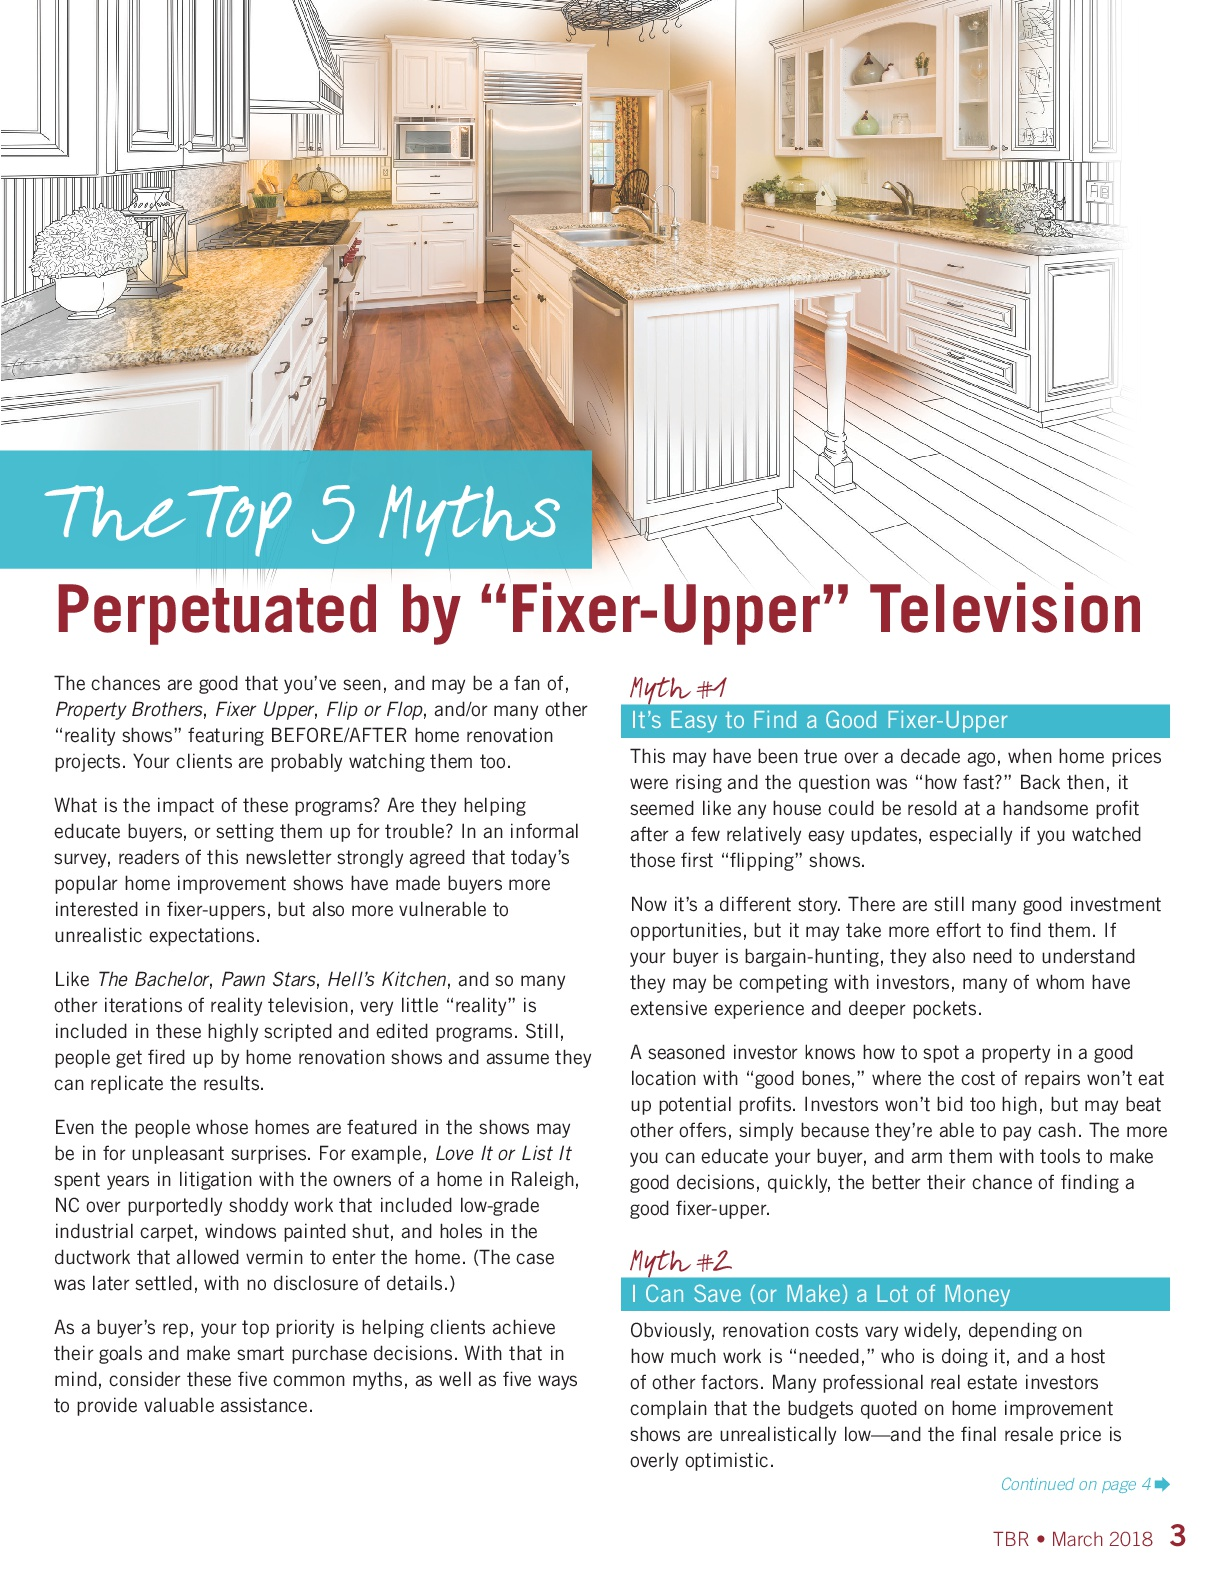 """Top 5 Myths Perpetuated by """"Fixer-Upper"""" Television"""